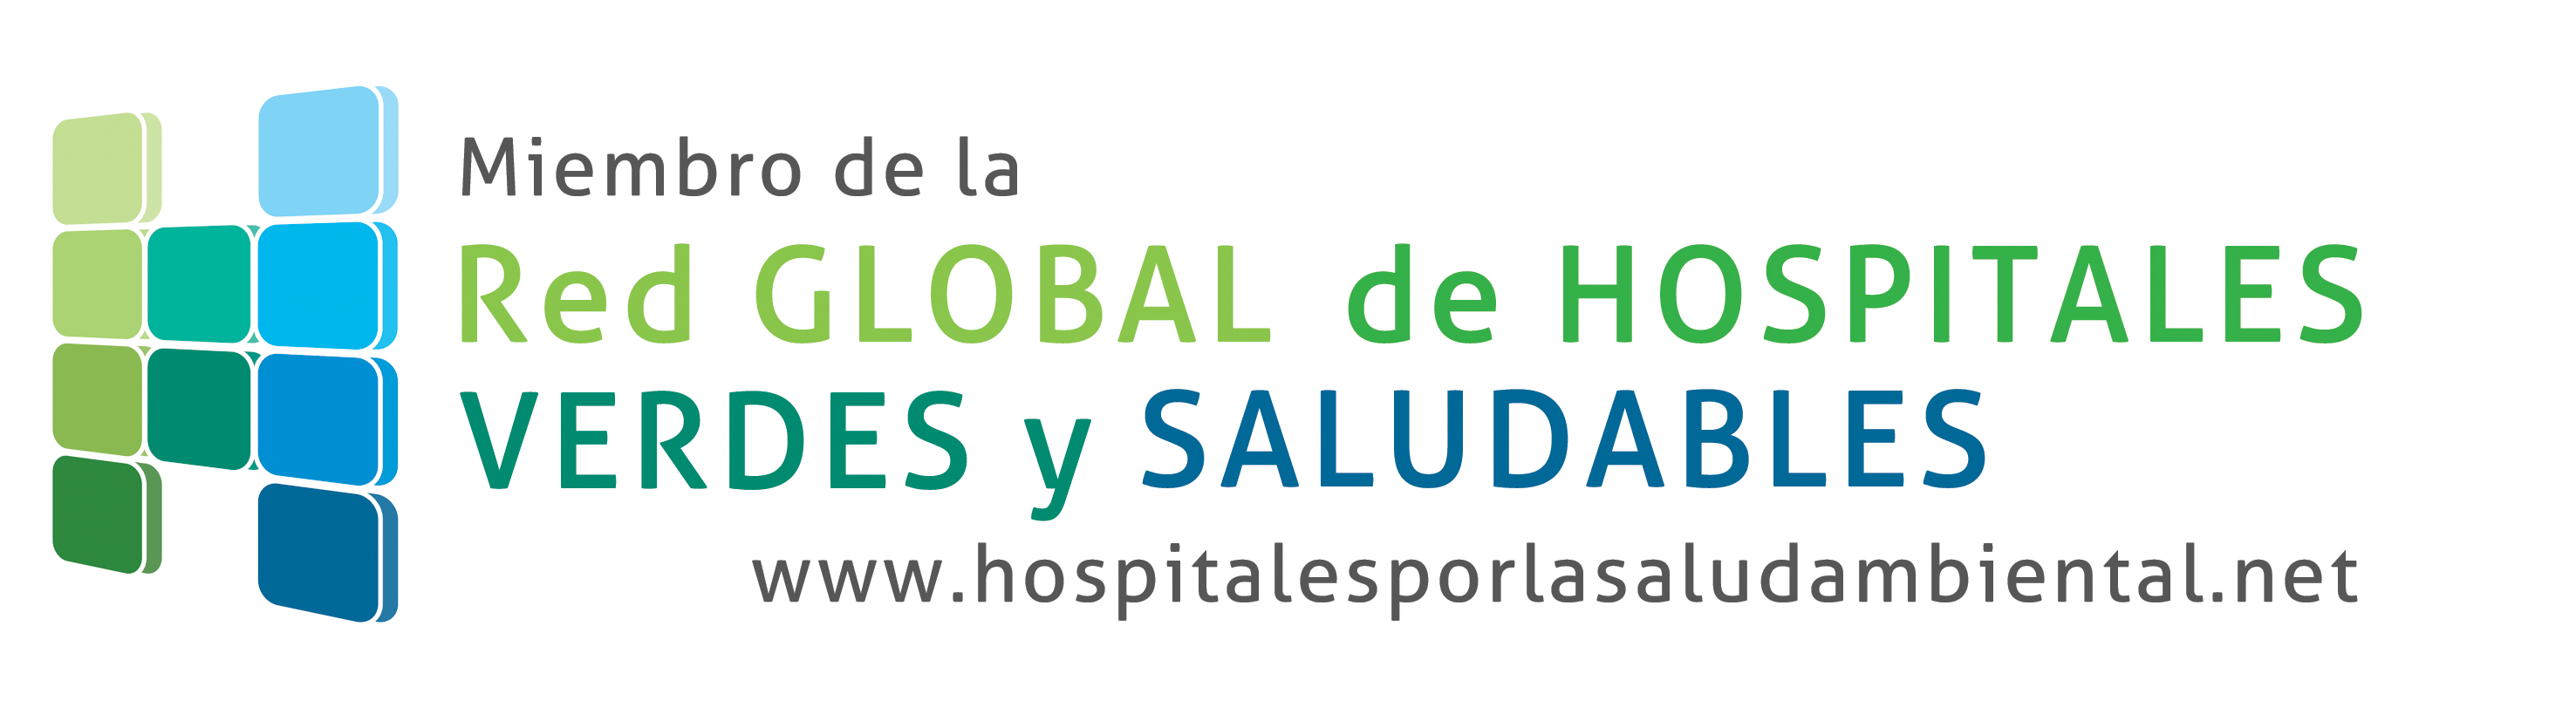 miembro de la Red Global de Hospitales Verdes y Saludables